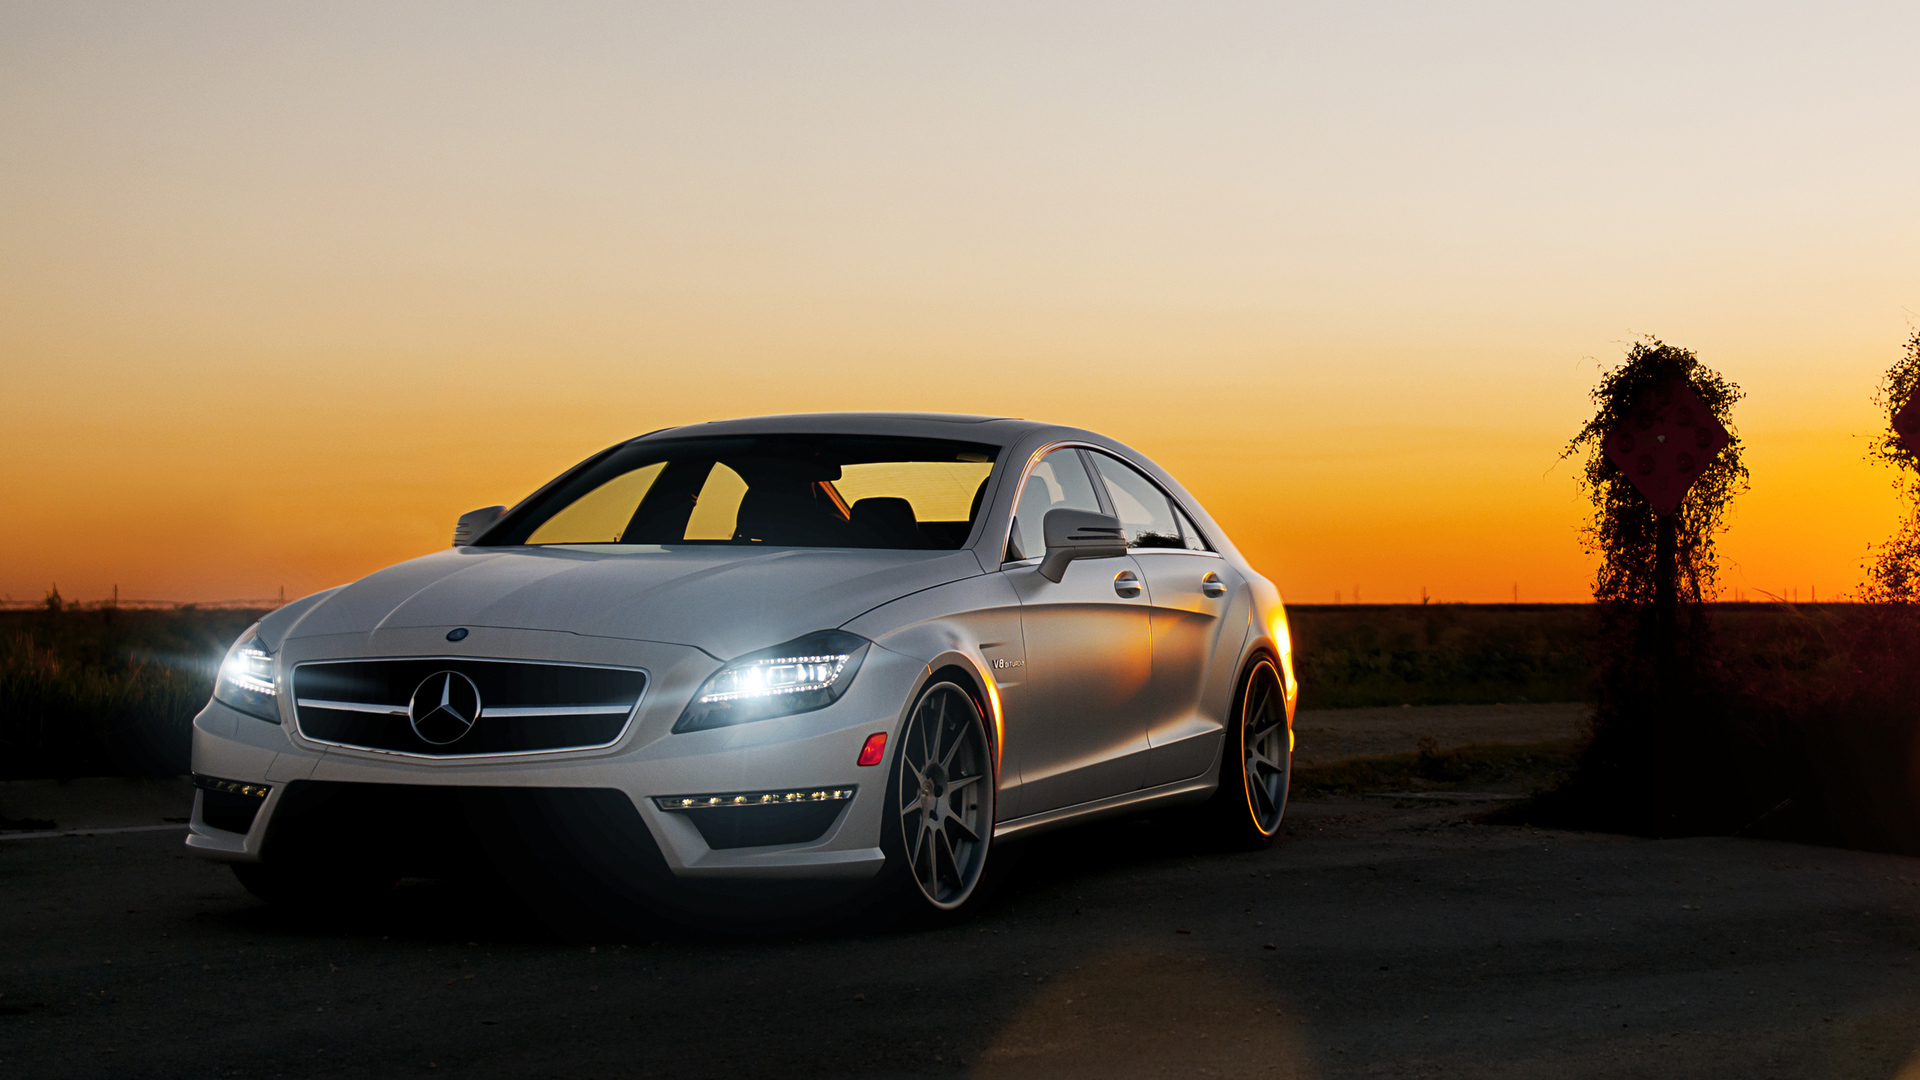 Cars Mercedes Benz CLS63 wallpaper